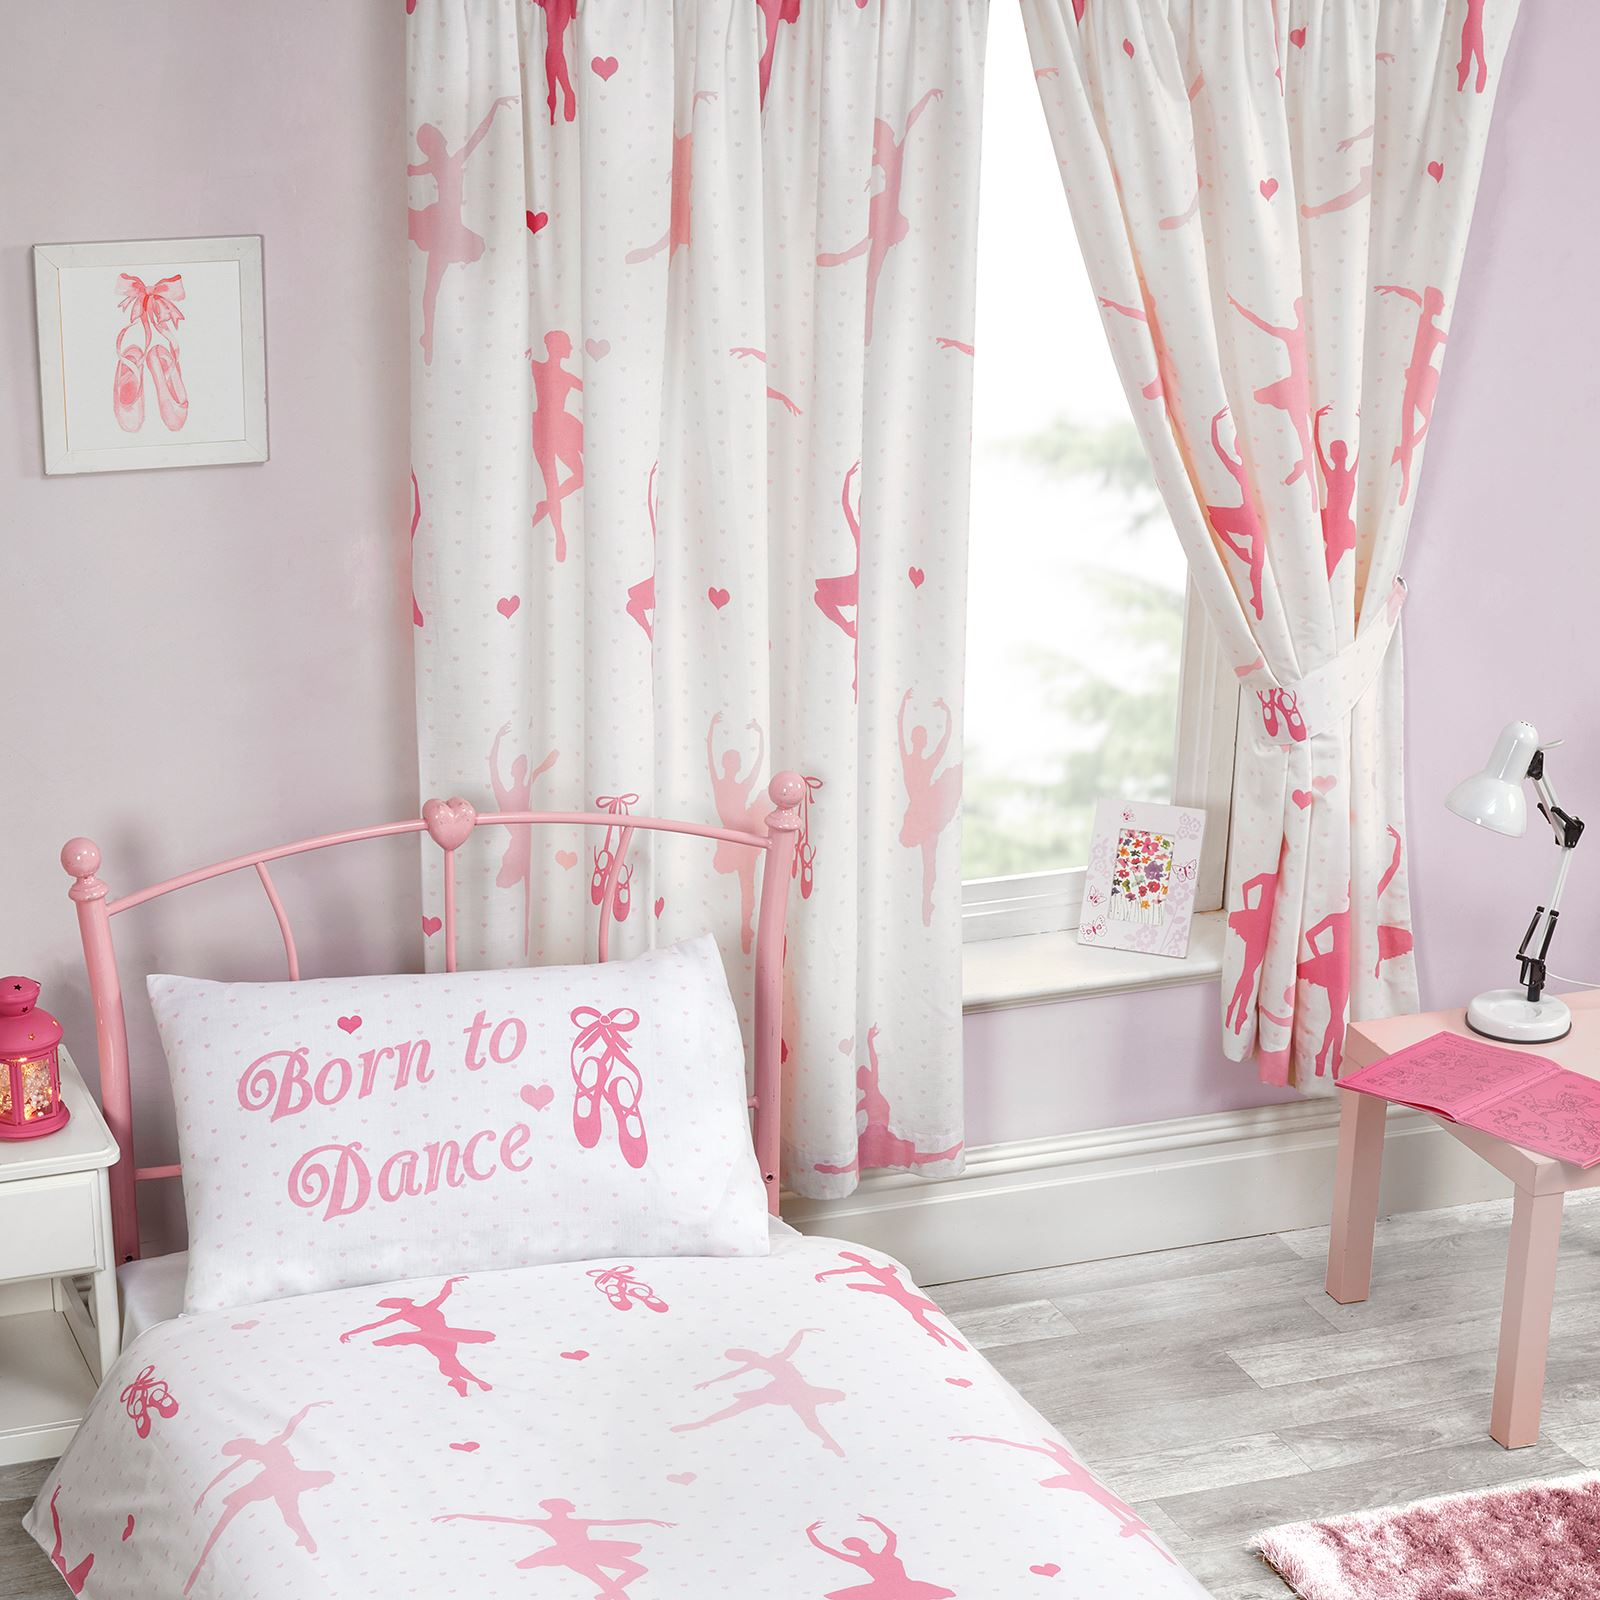 Details about BORN TO DANCE BALLERINA LINED CURTAINS BEDROOM 54\